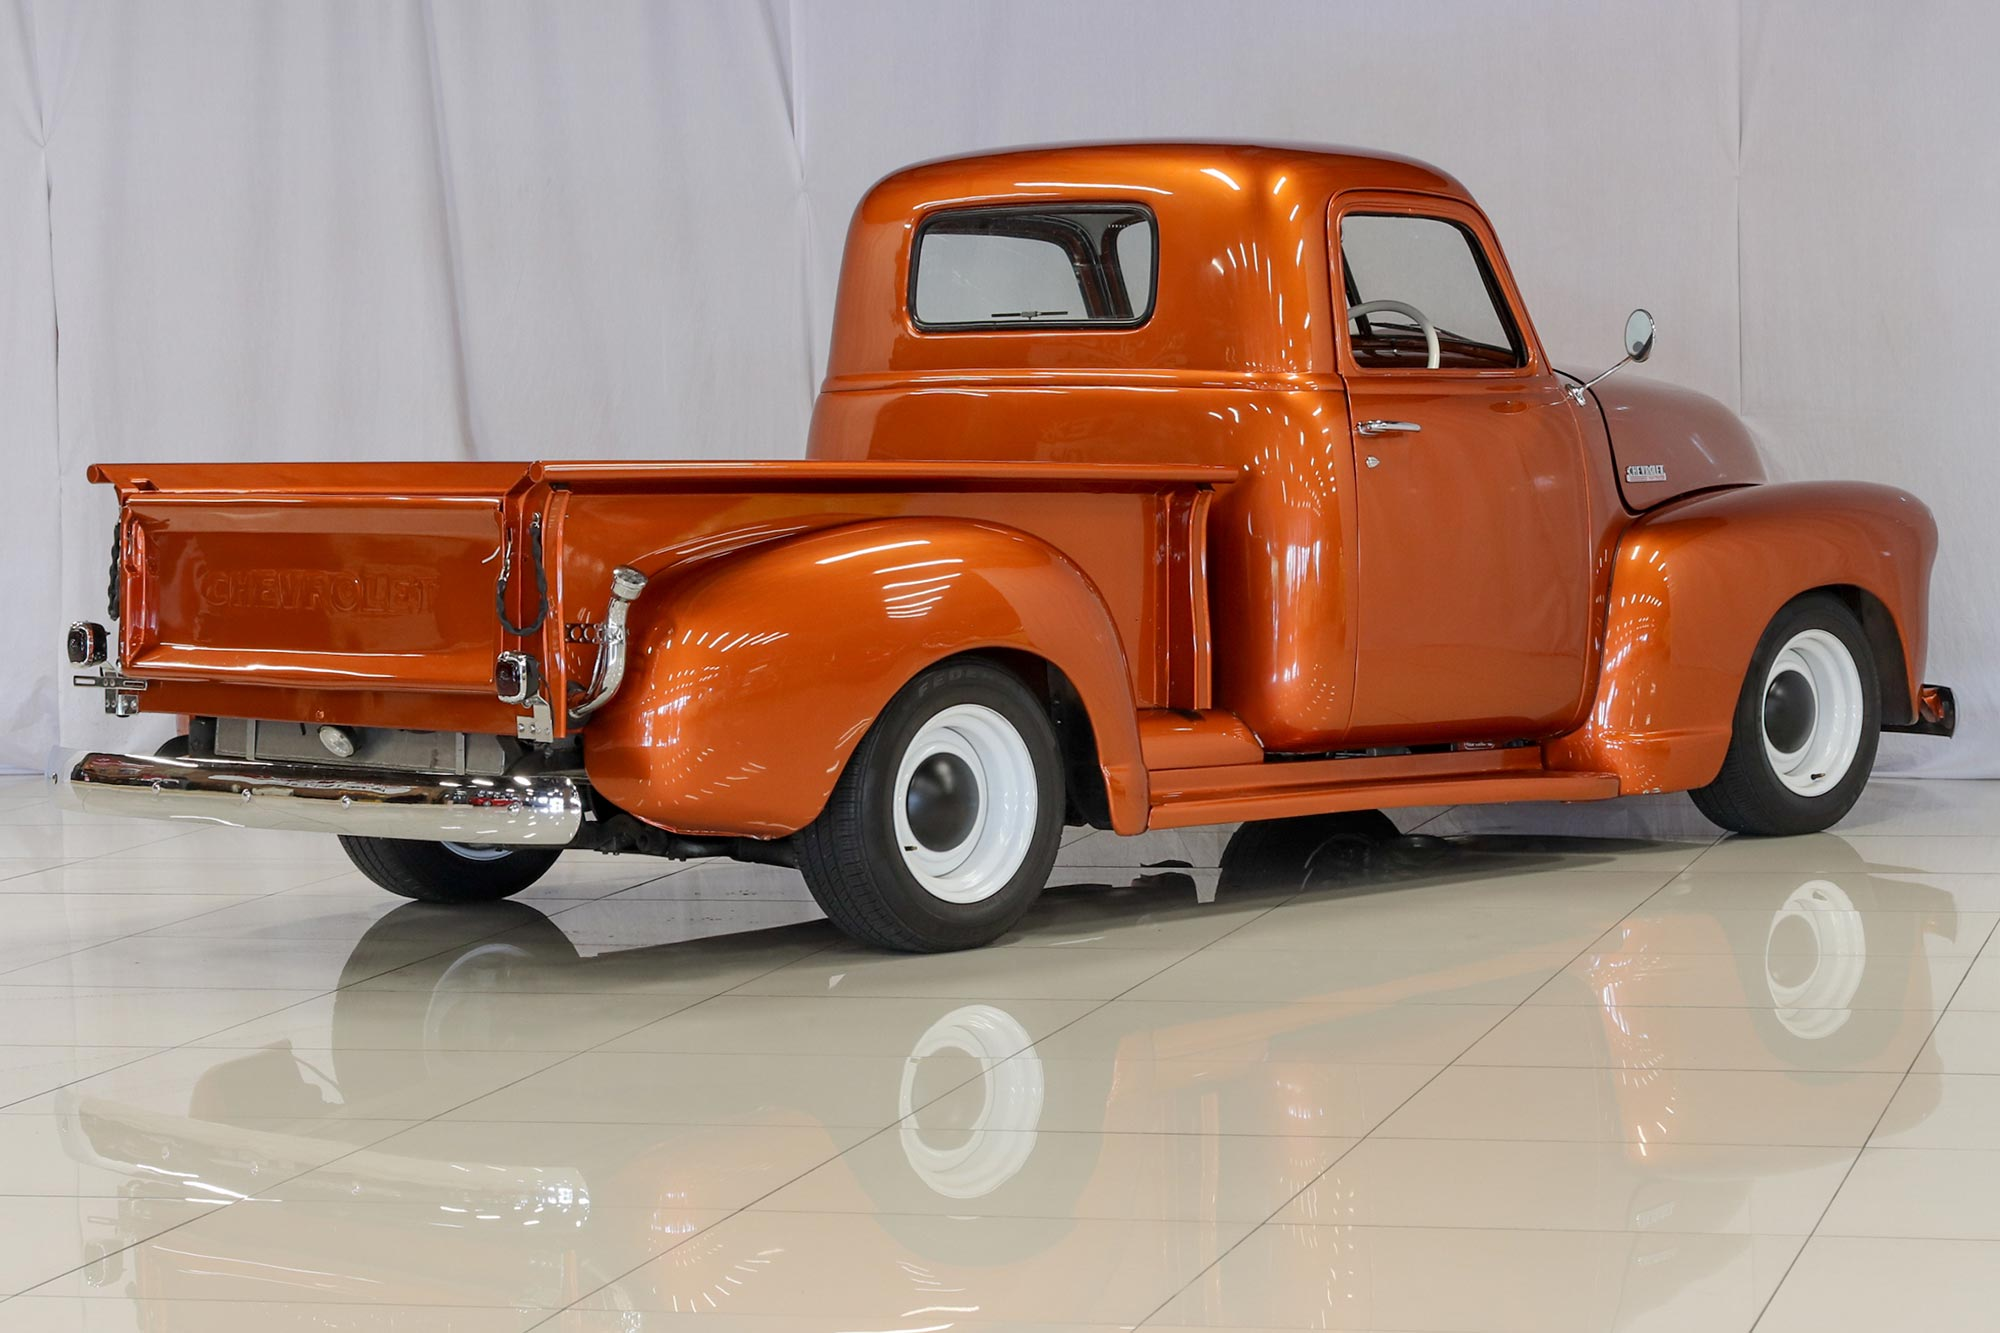 1954 Chevrolet Pickup Truck View By Appointment Creative Rides Vehicle Overview